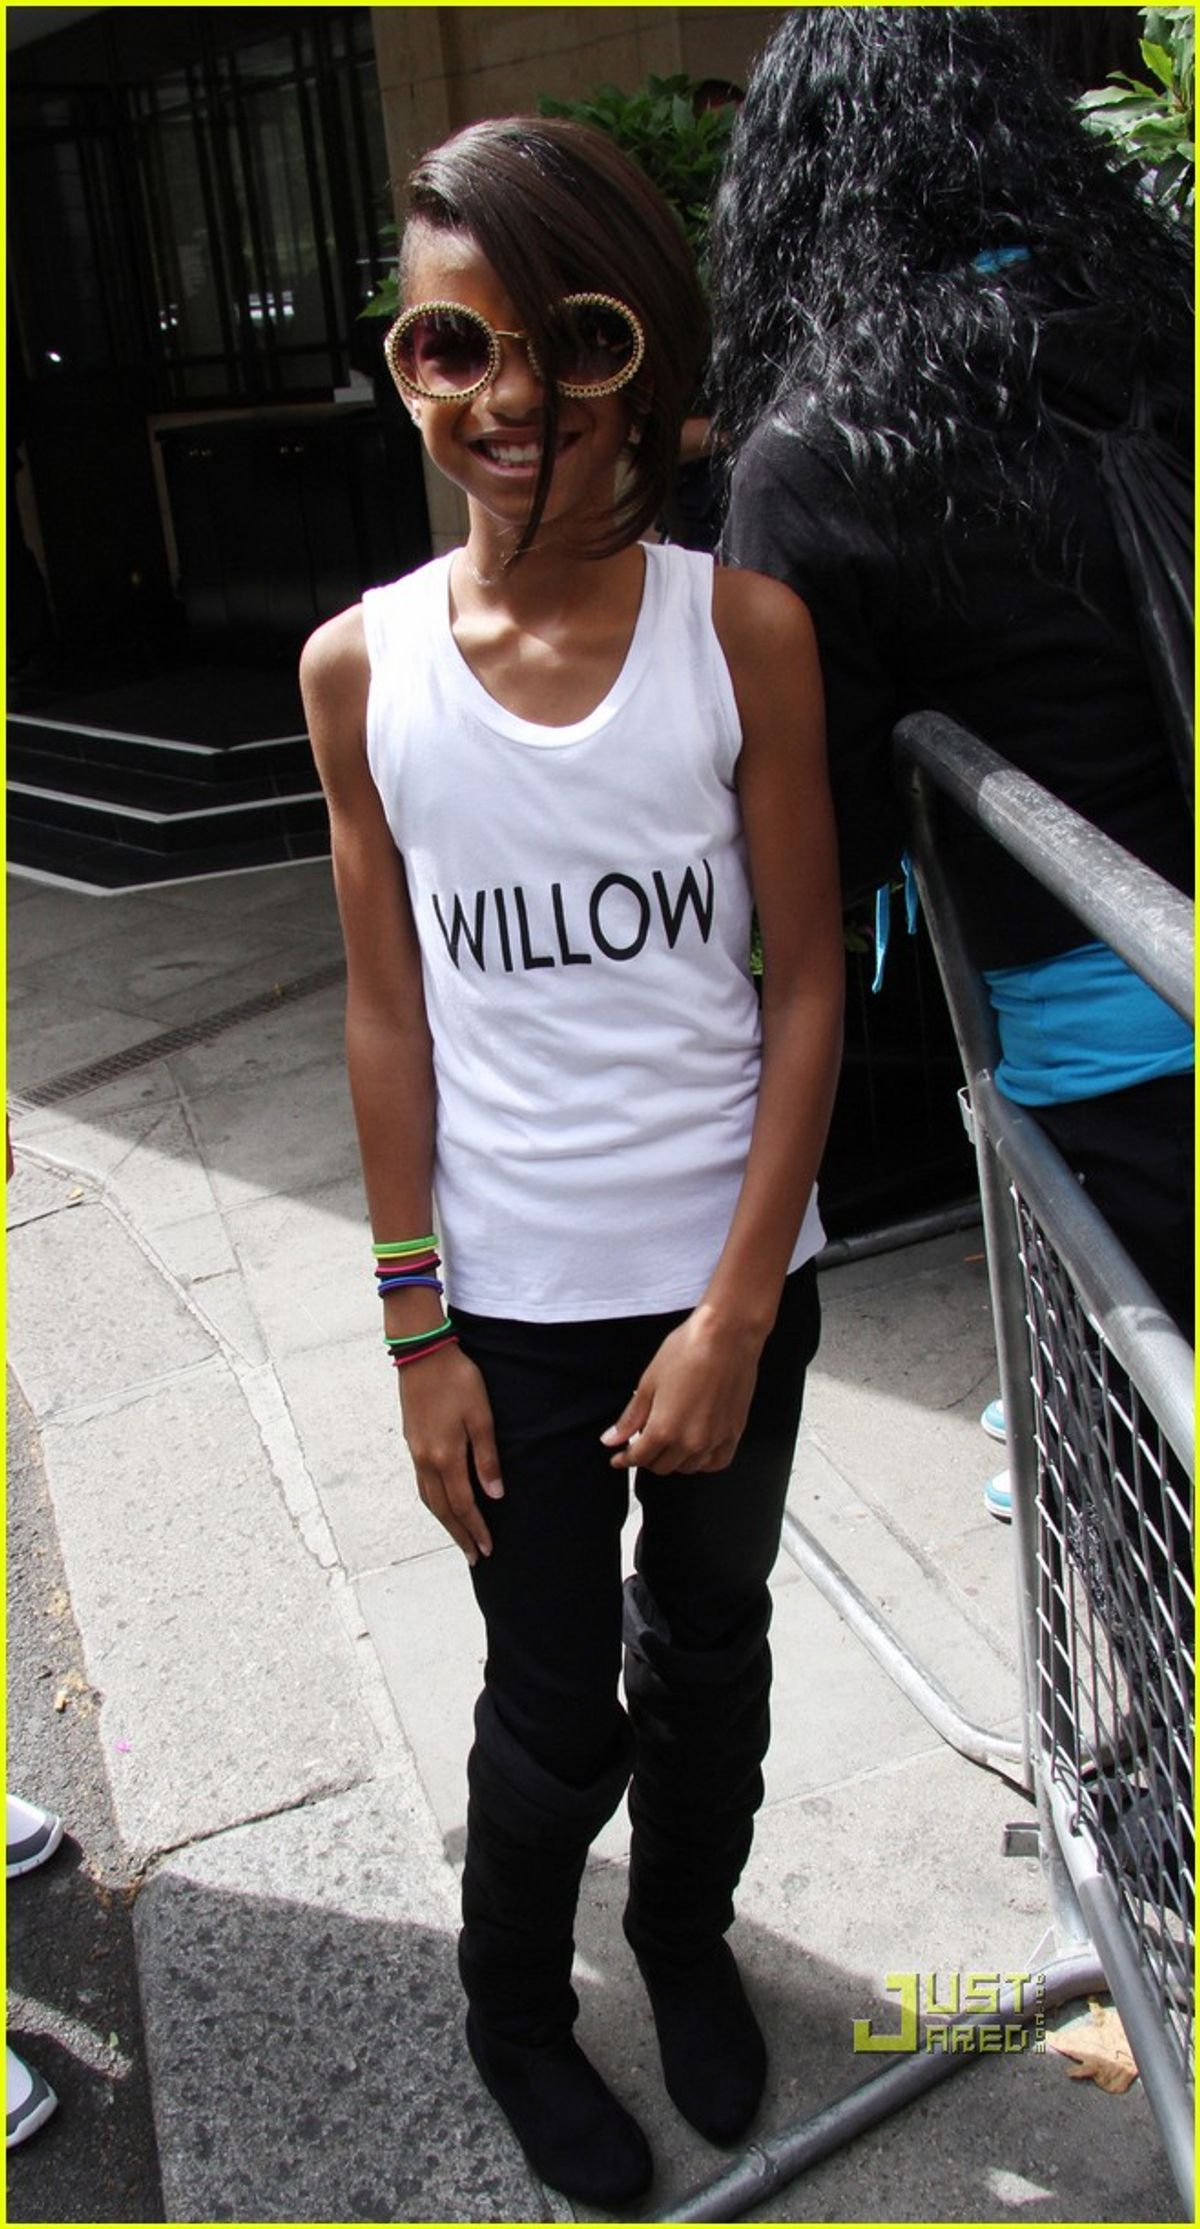 Willow Smith sighted leaving her hotel on July 17, 2010 in London, England.Willow Smith Sighting In London - July 17, 2010London, England United KingdomJuly 17, 2010Photo by Simon James/FilmMagic.comTo license this image (61071633), contact FilmMagic.com (Simon James/filmmagic.com)